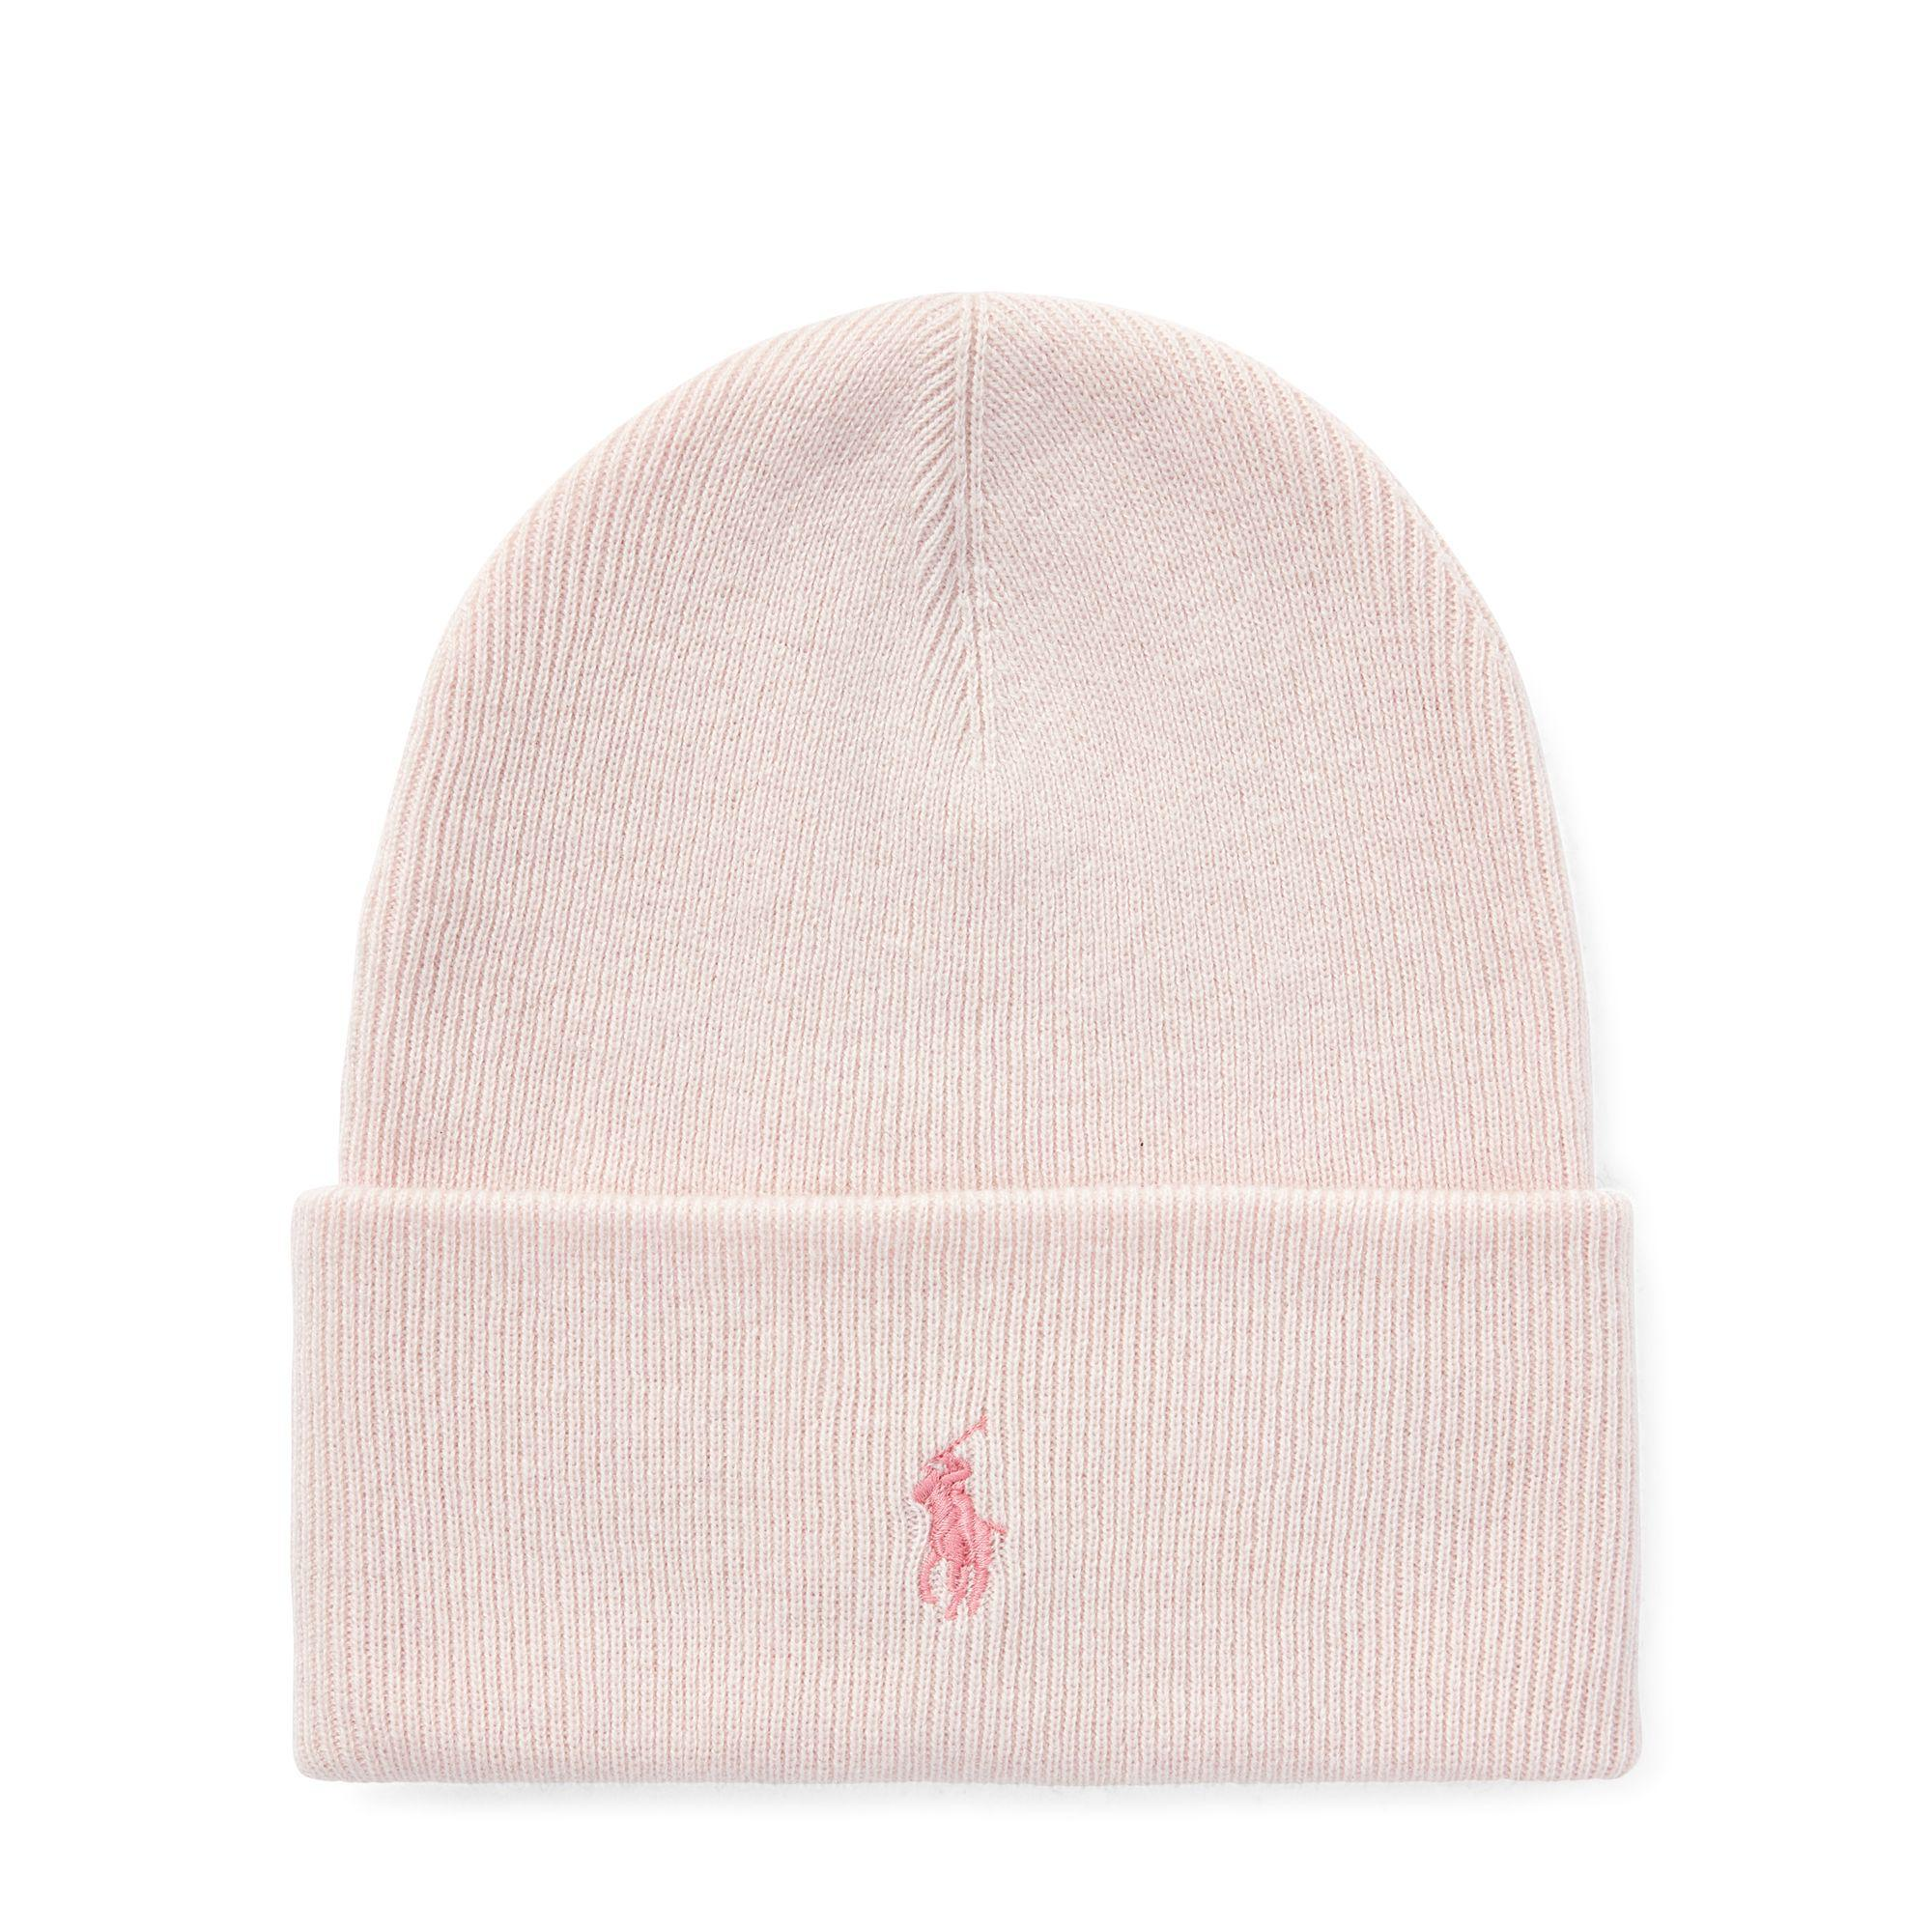 07d76fdeb295e5 Lyst - Ralph Lauren Pink Pony Wool-cashmere Hat in Pink